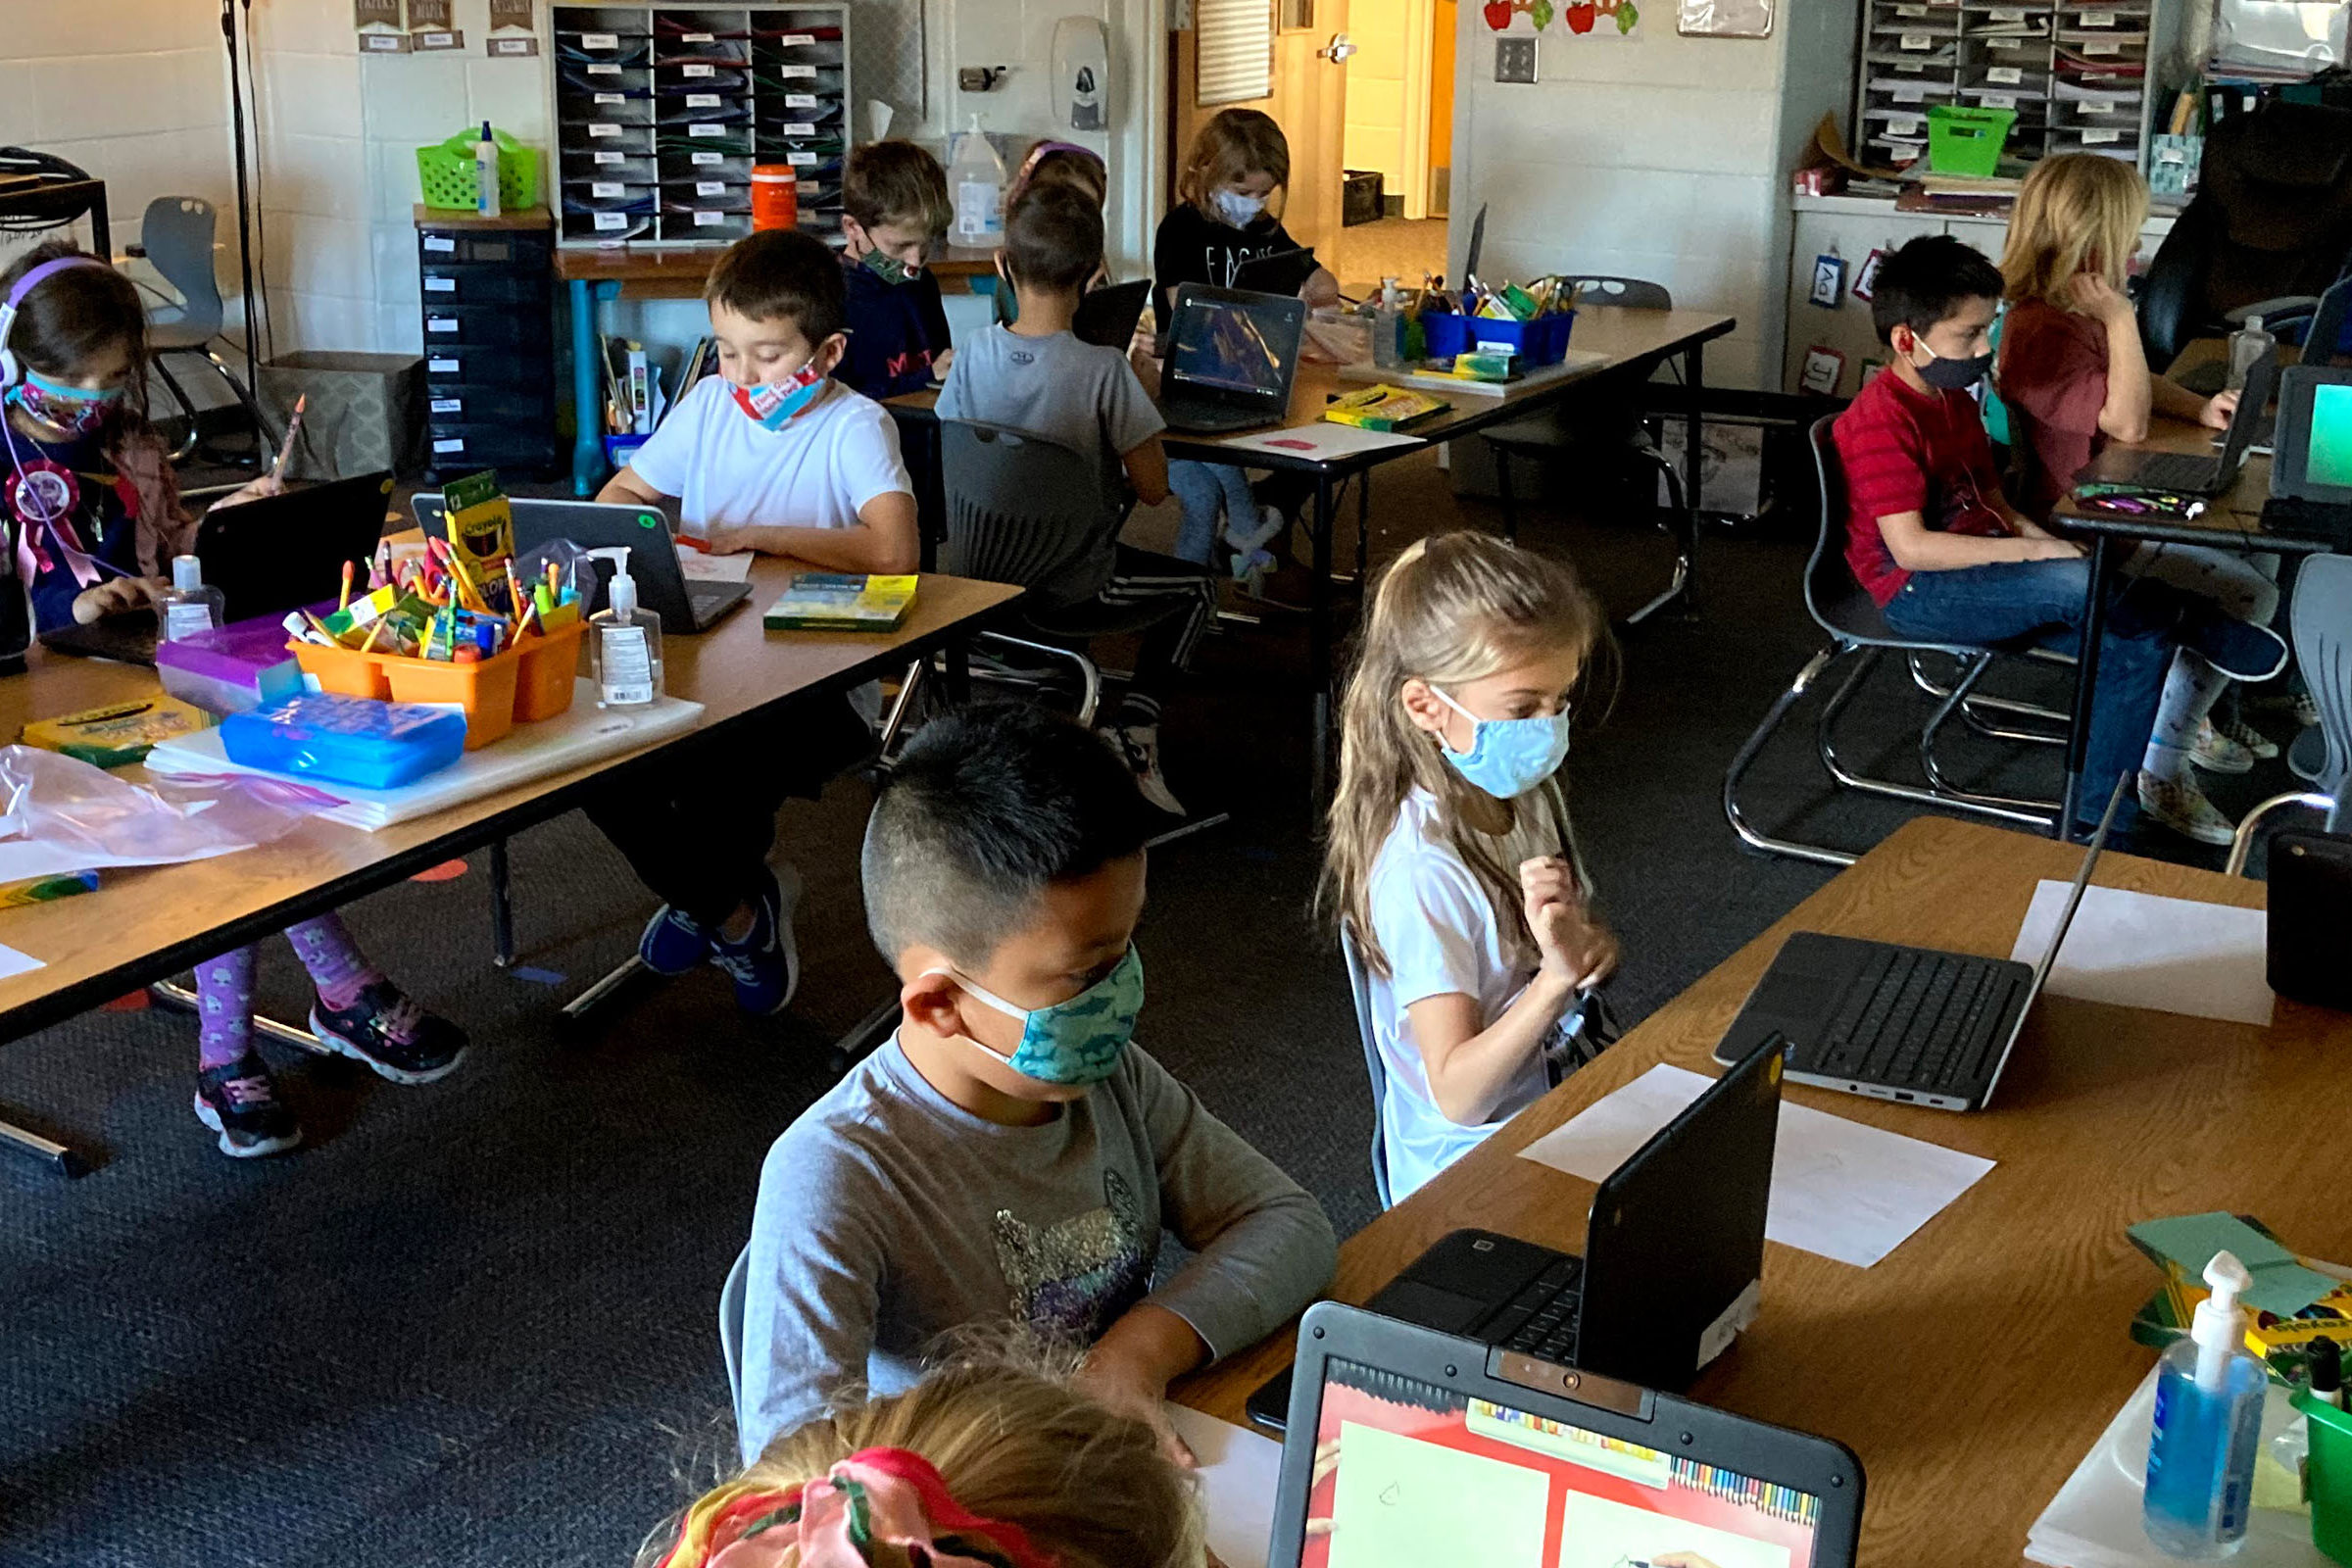 Kids learning in the classroom with laptops